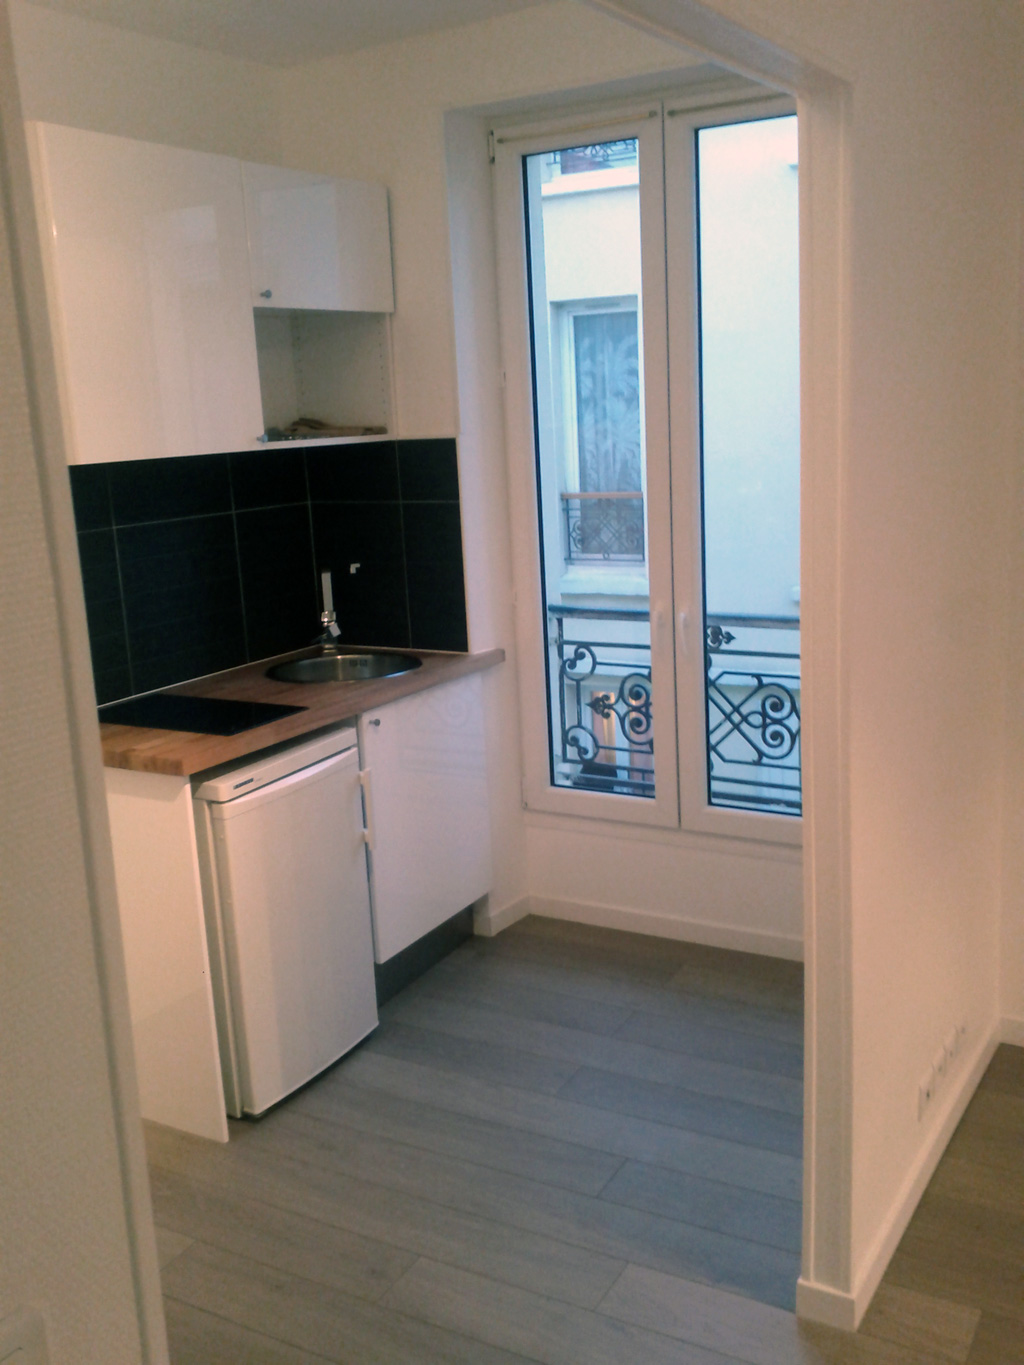 Buzelin - 22m2 - Paris 18ème